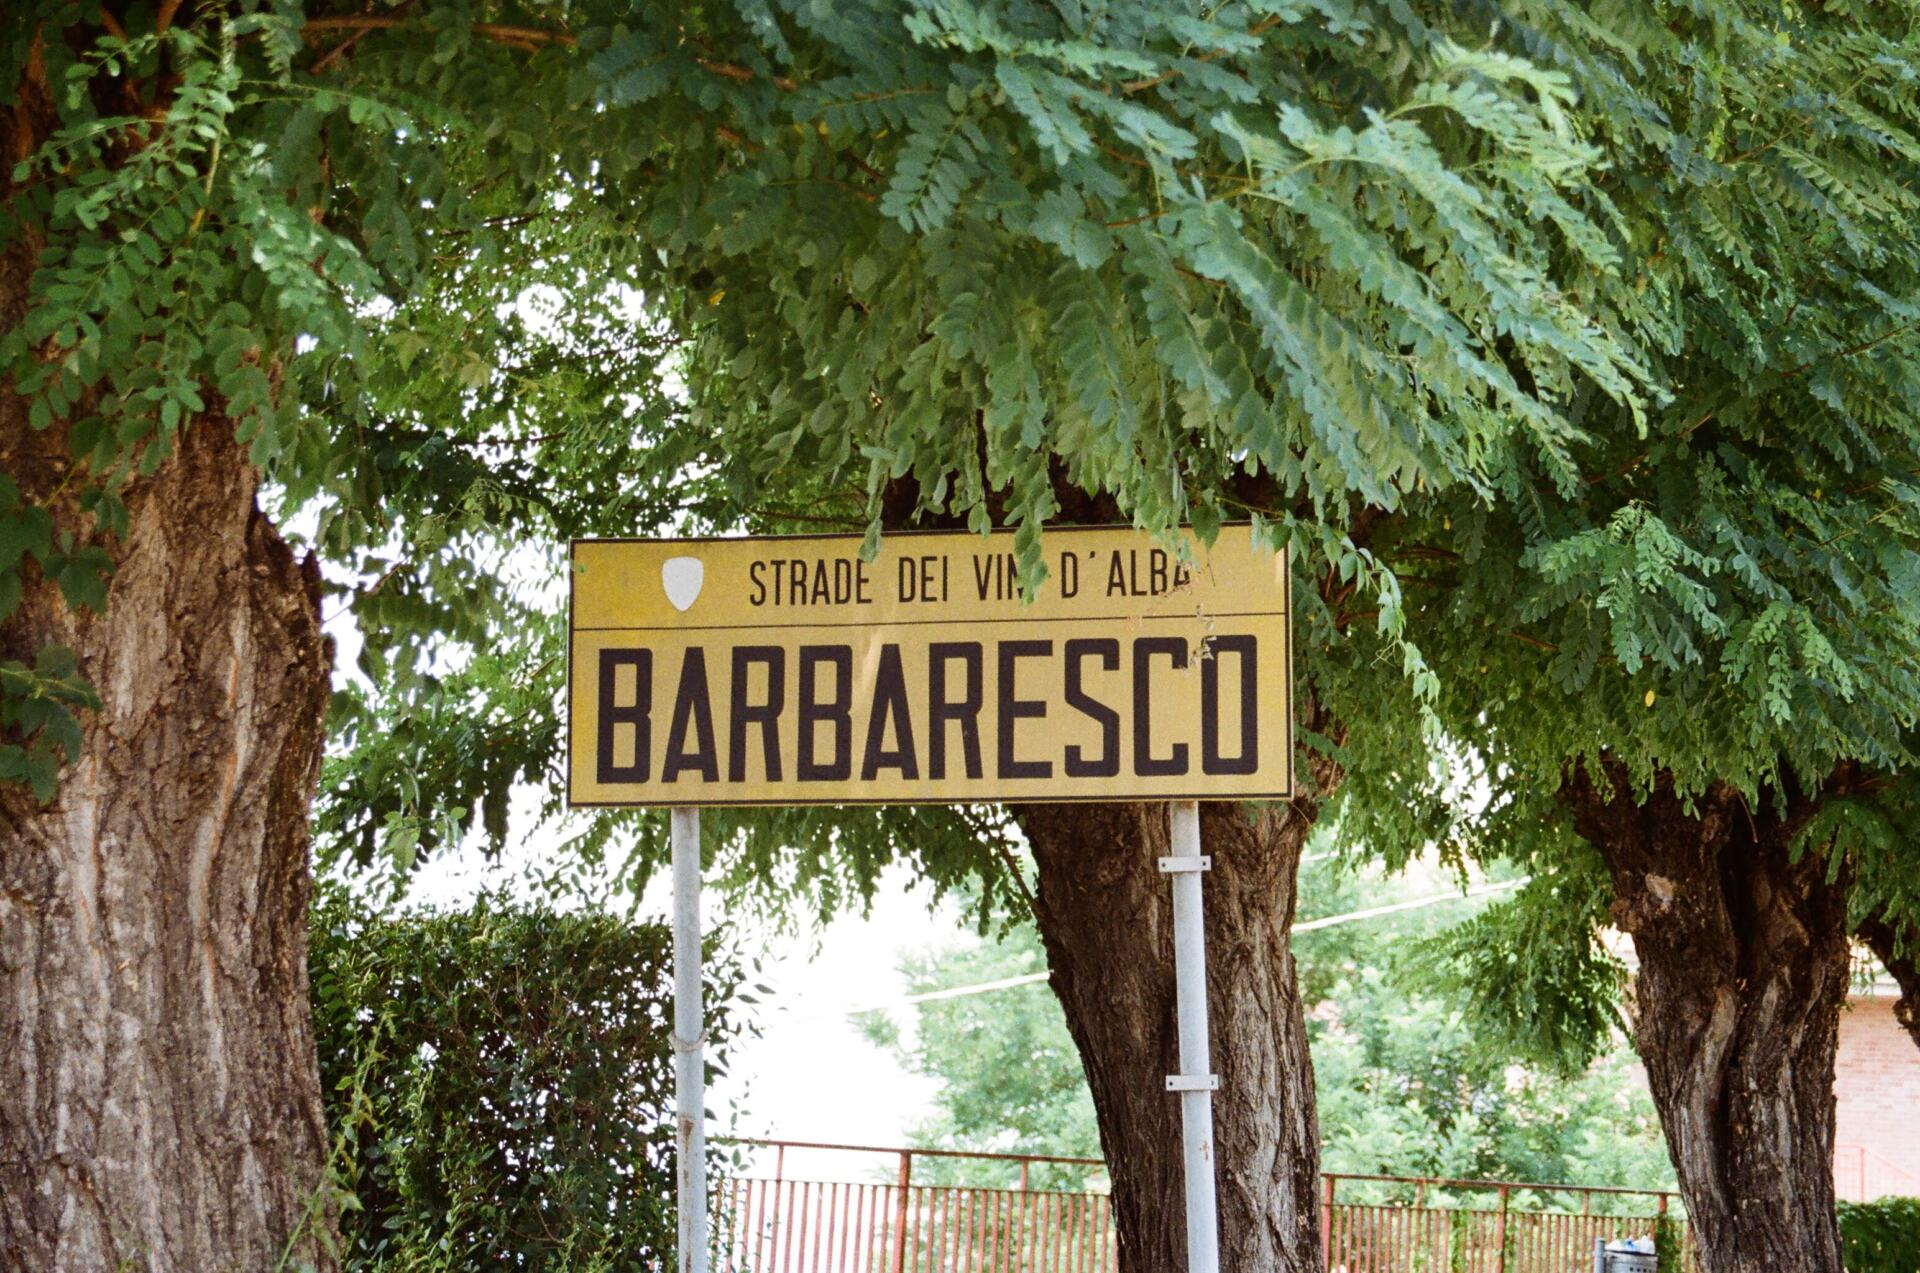 Street sign of Barbaresco